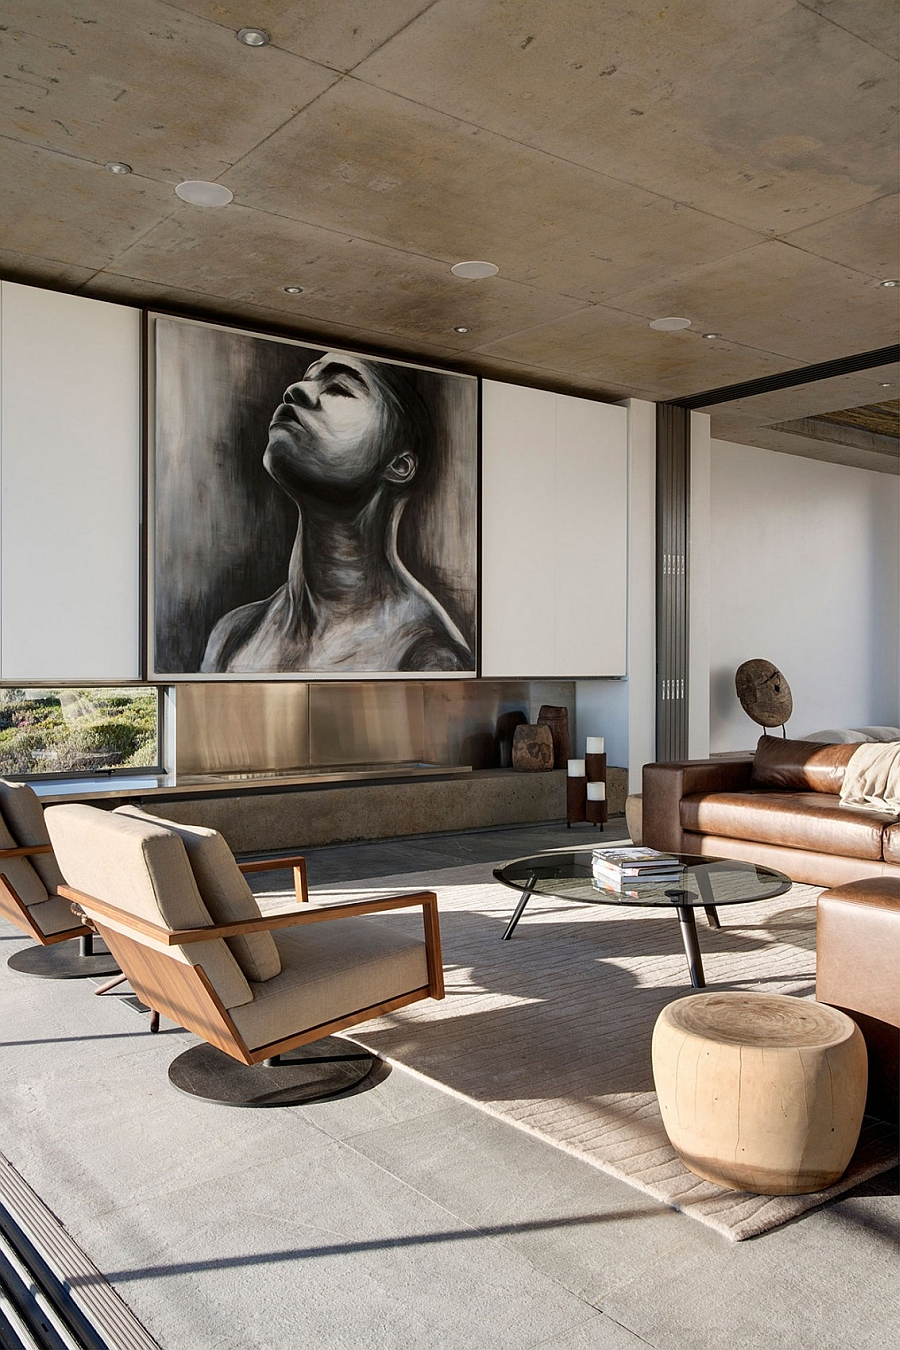 Large painting above the fireplace complements the neutral color scheme of the interior